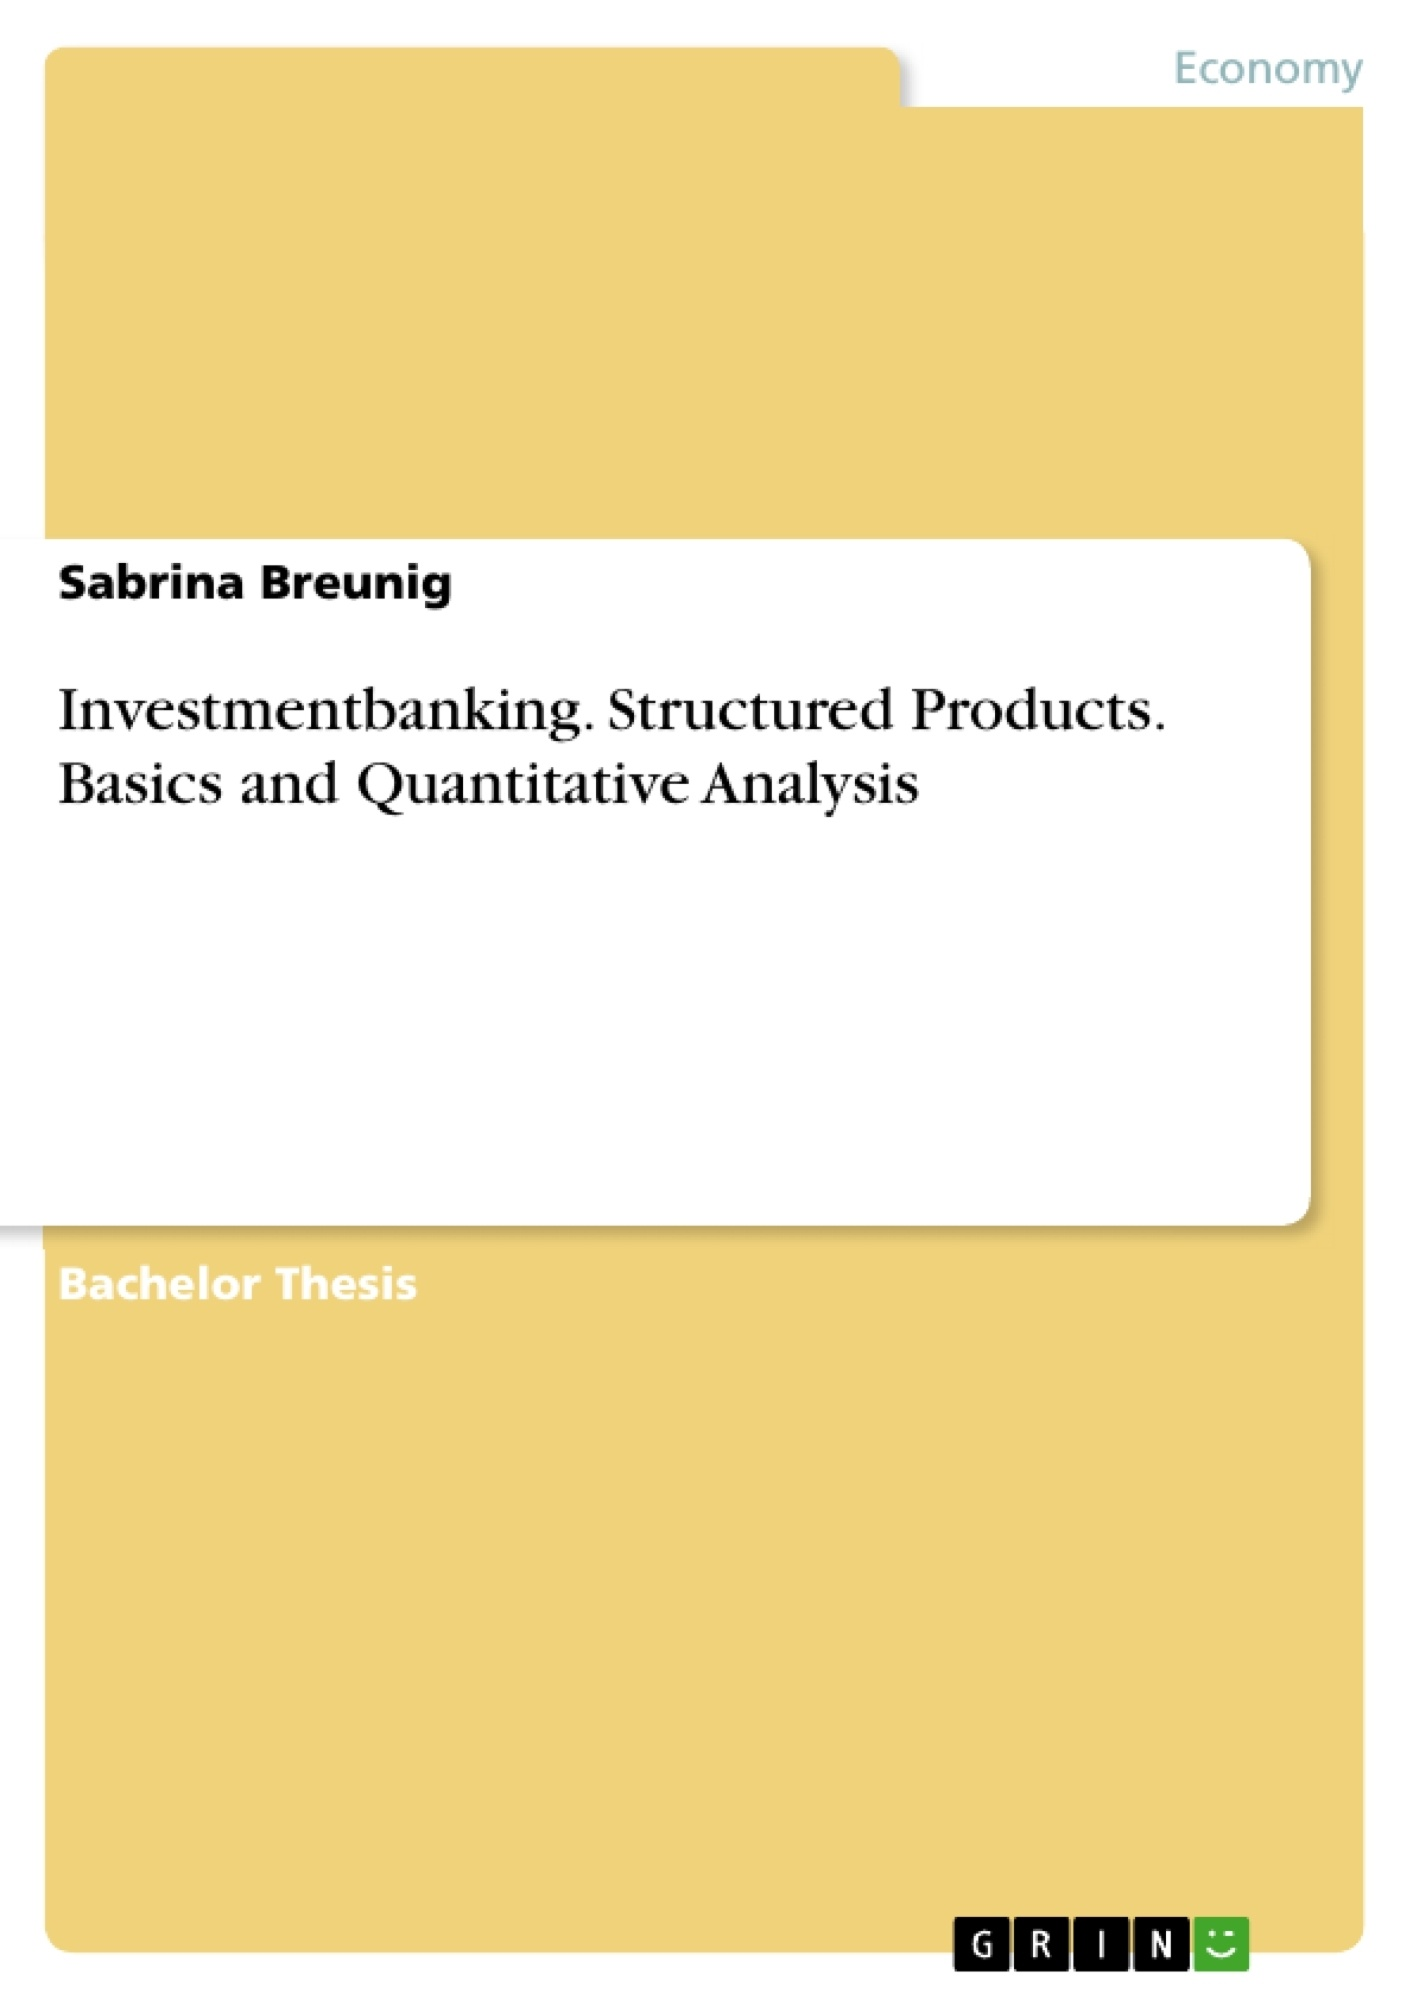 Title: Investmentbanking. Structured Products. Basics and Quantitative Analysis